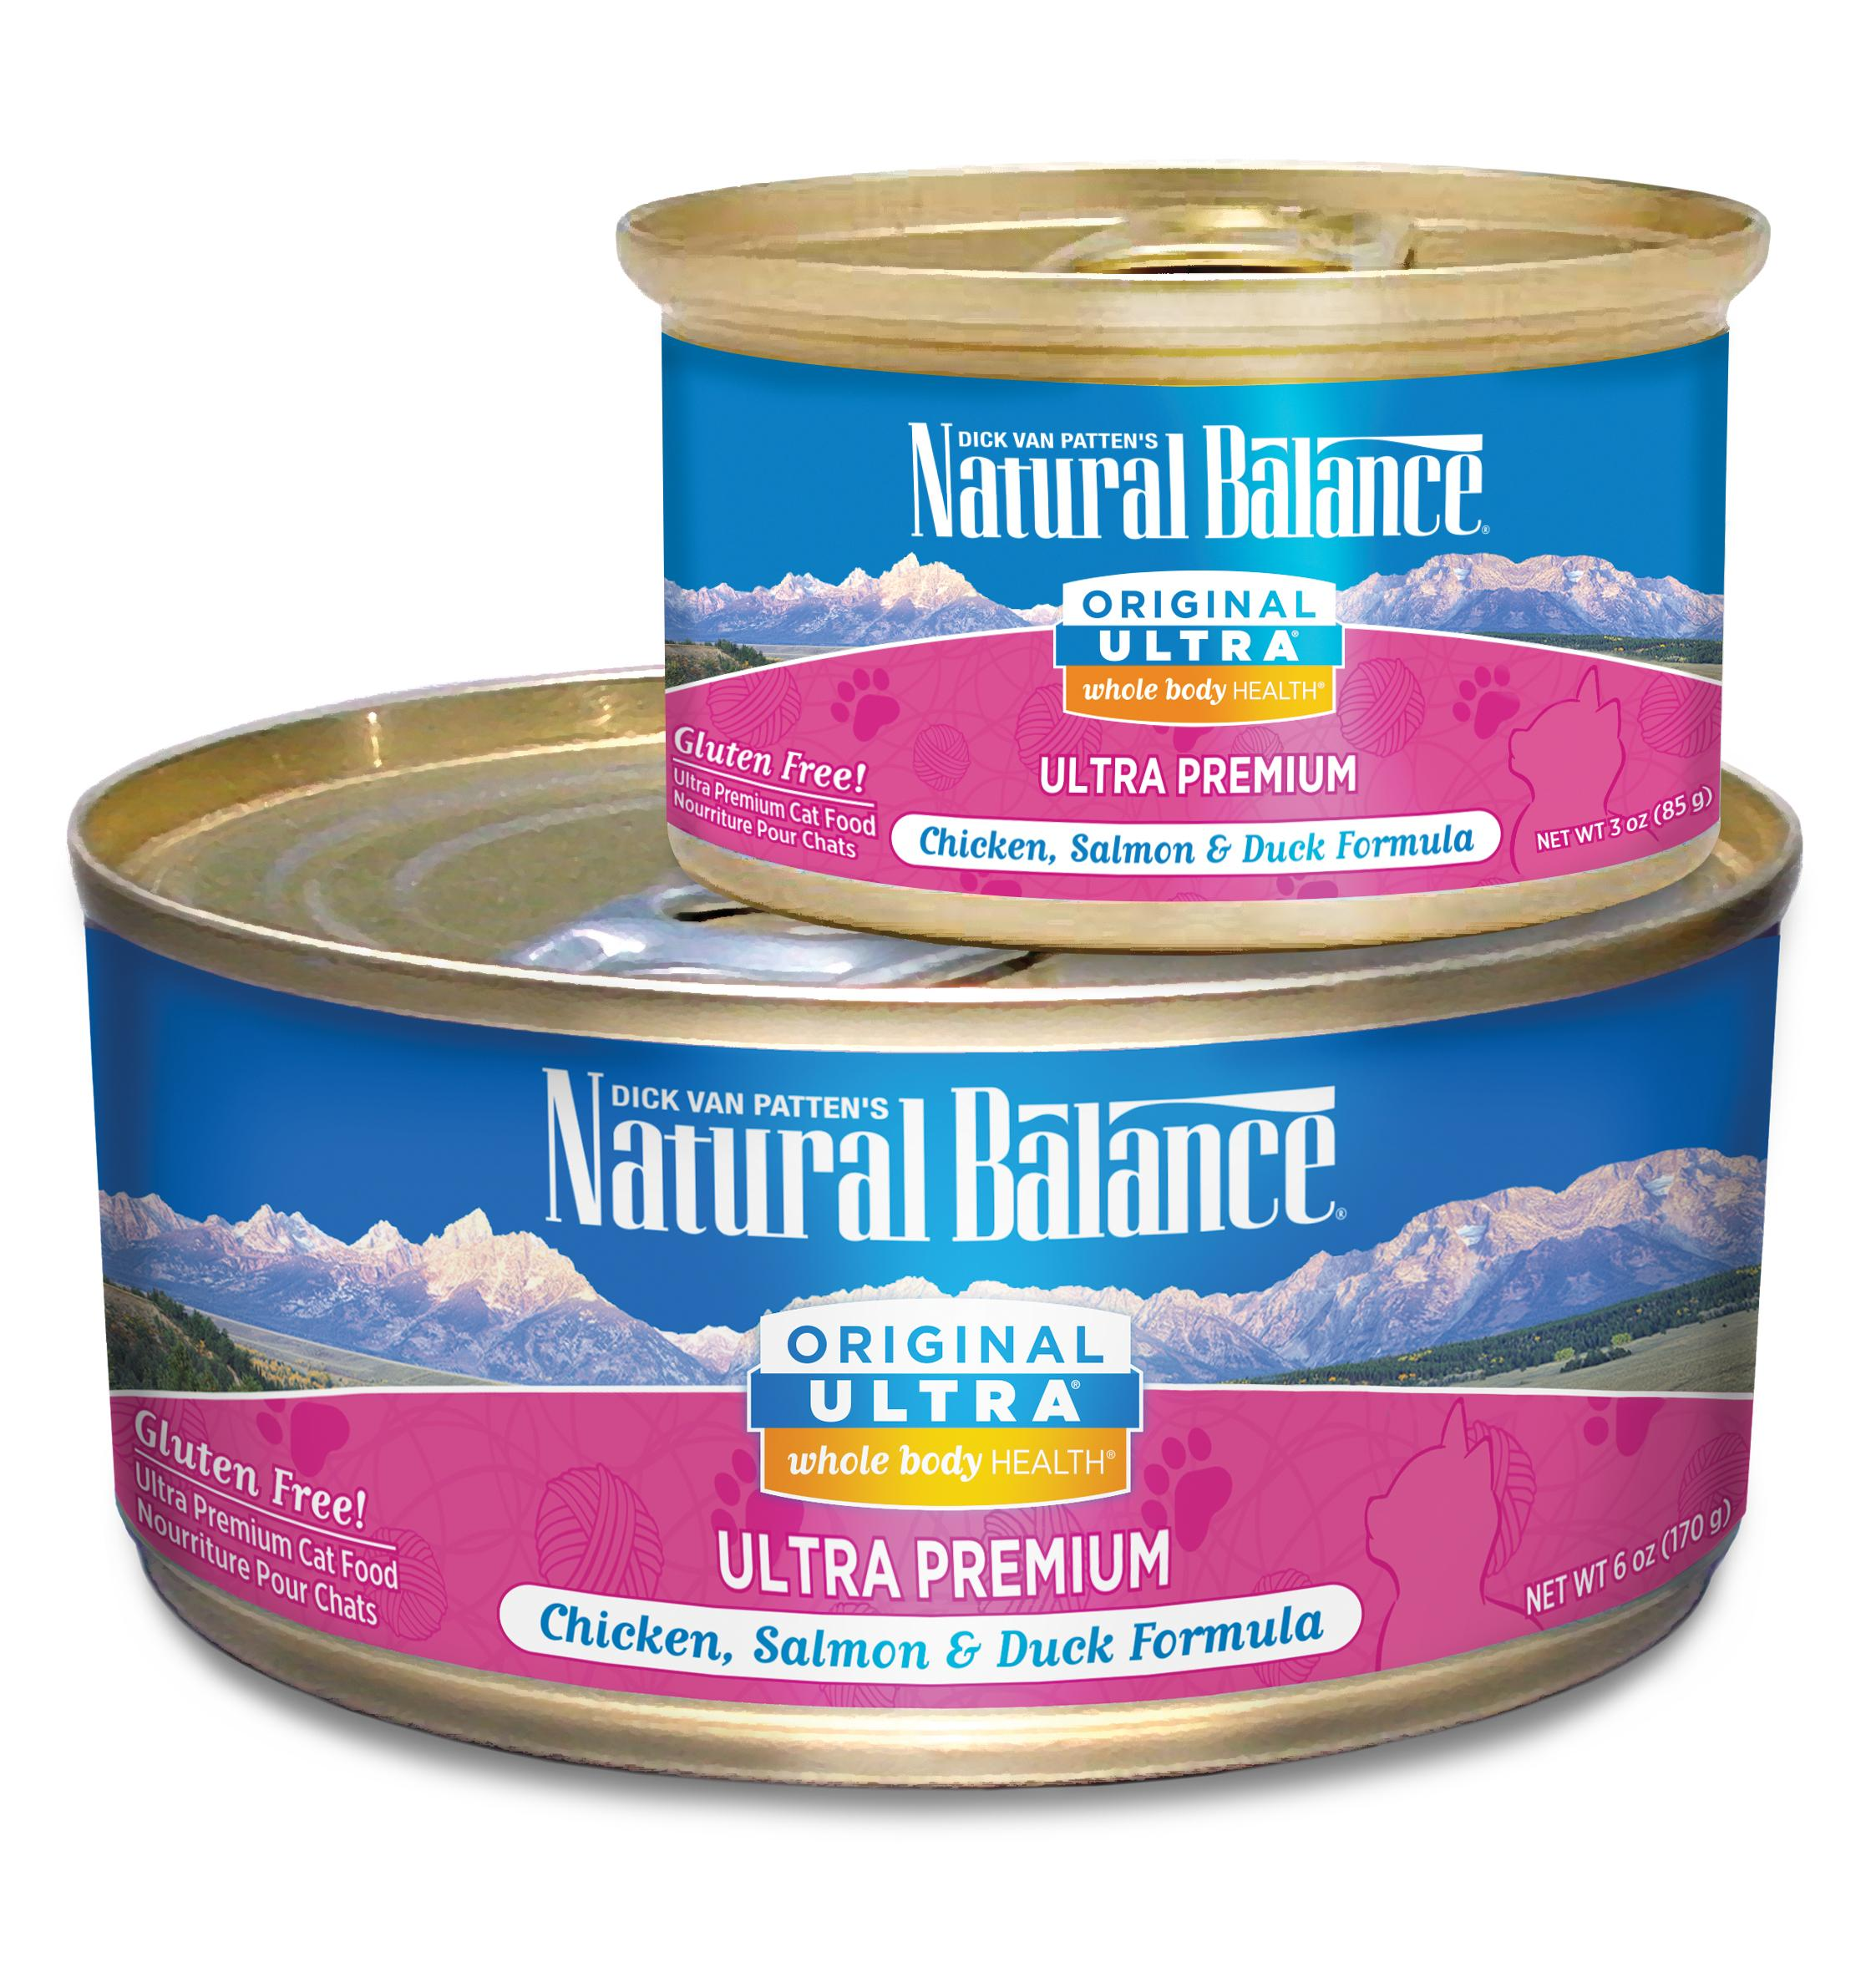 Natural Balance Food Recalls